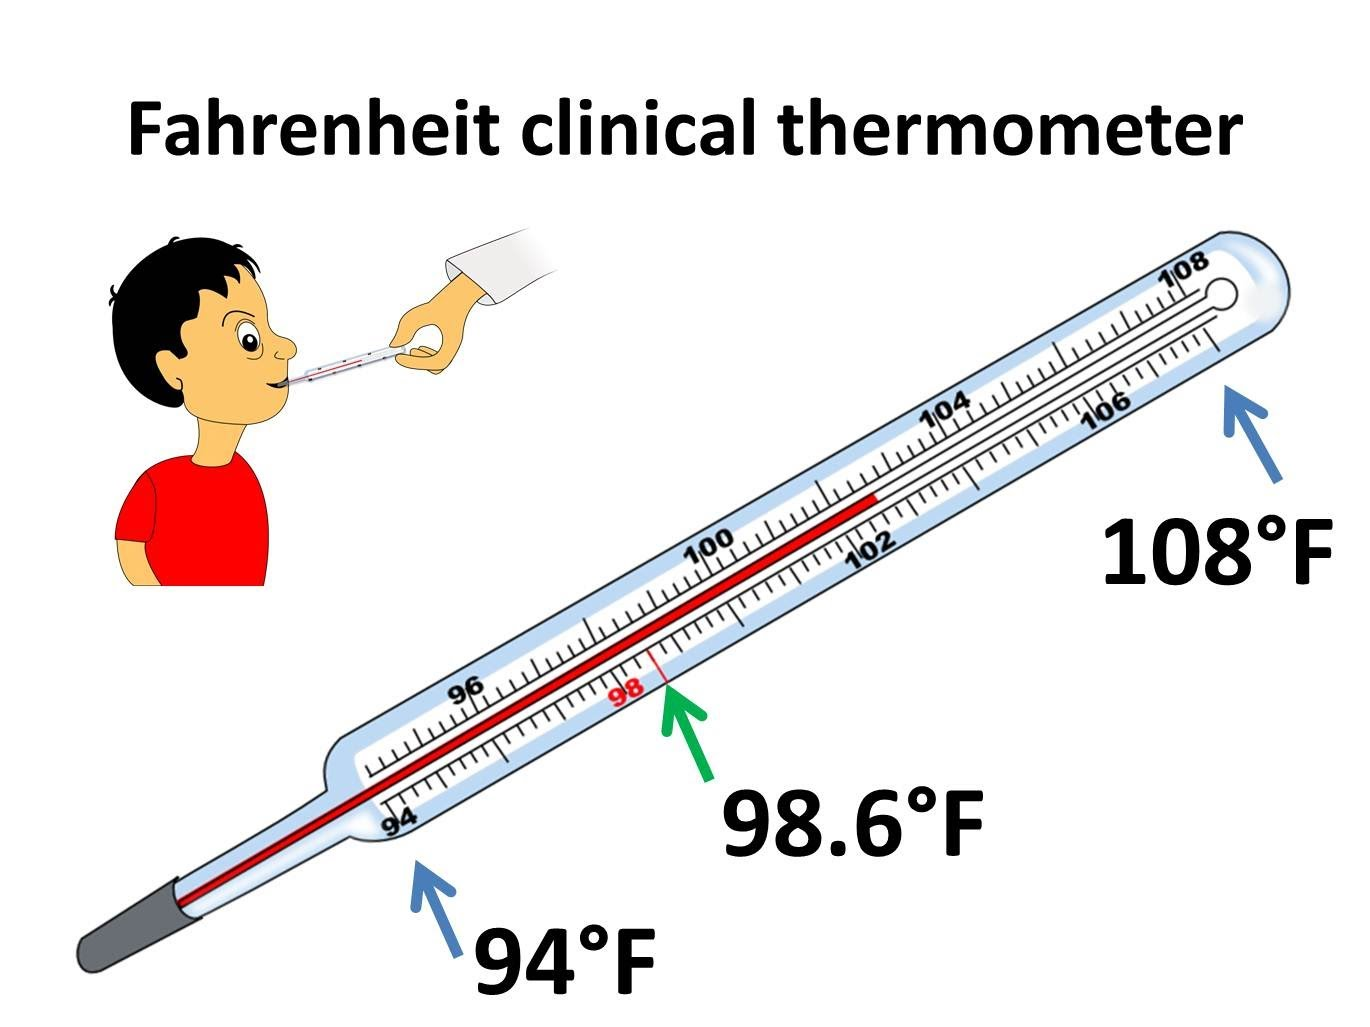 Download FingerPrint Temperature Thermometer App iPhone & Android